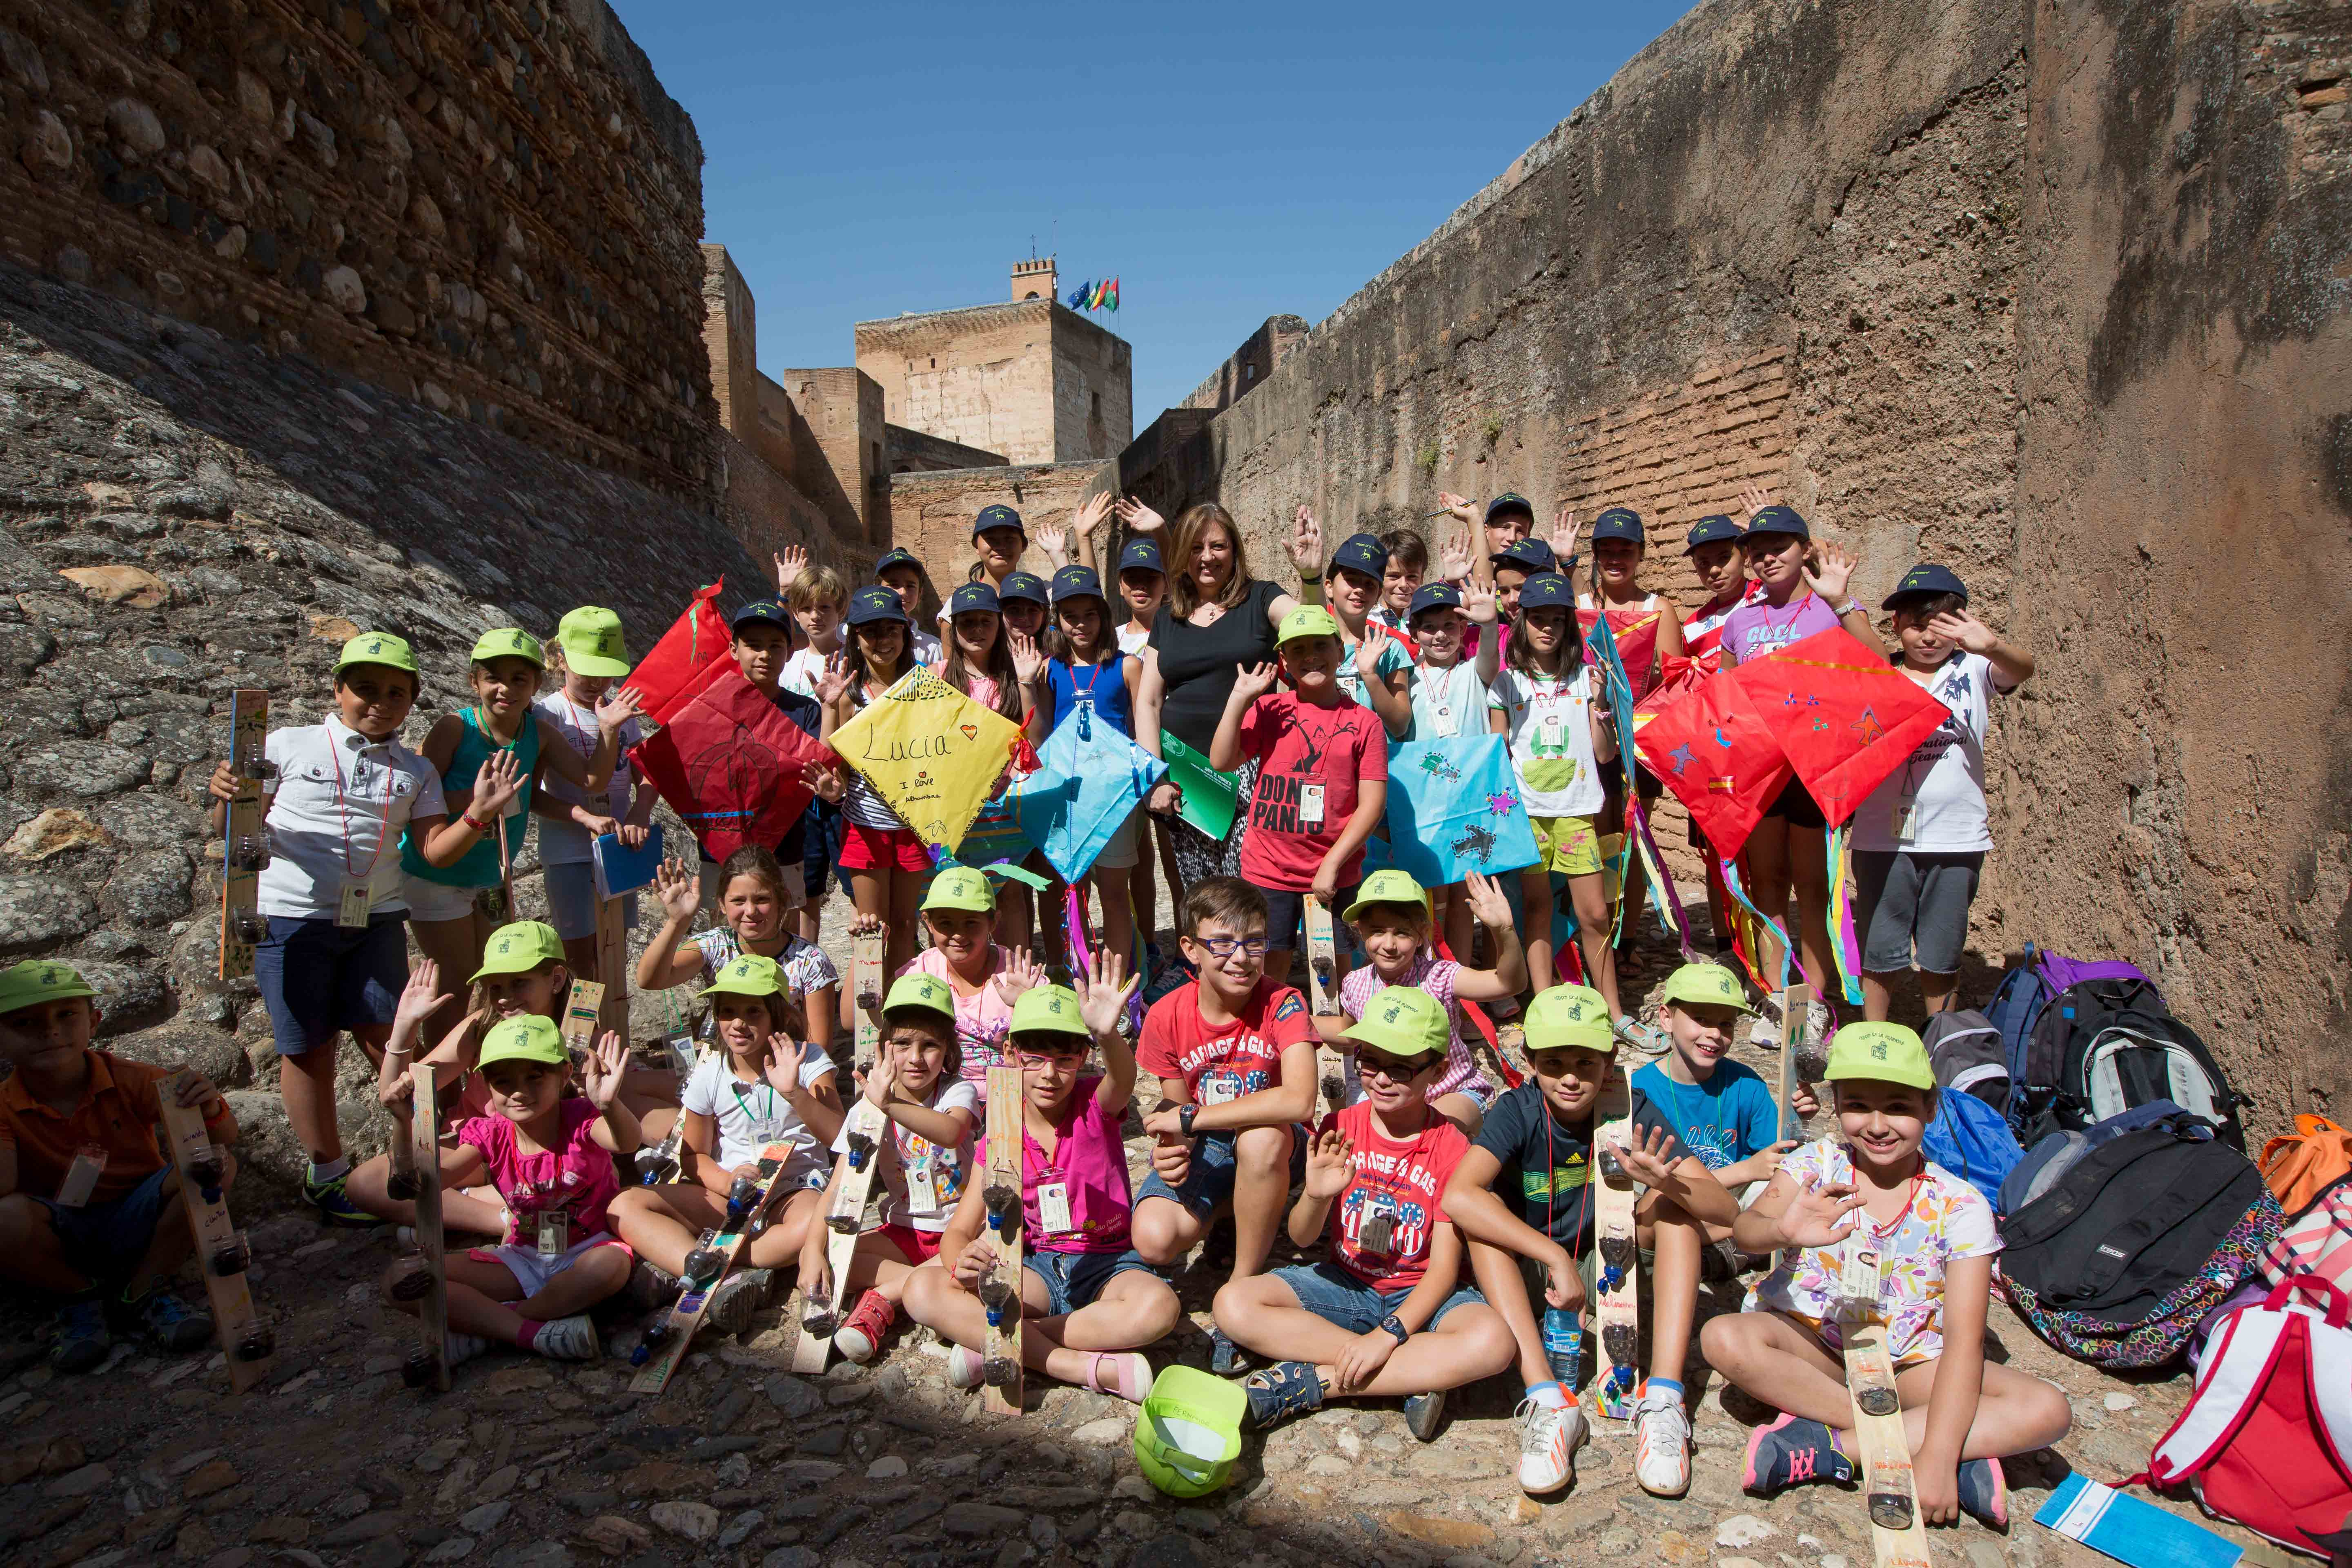 Discover the Alhambra through the eyes of a child